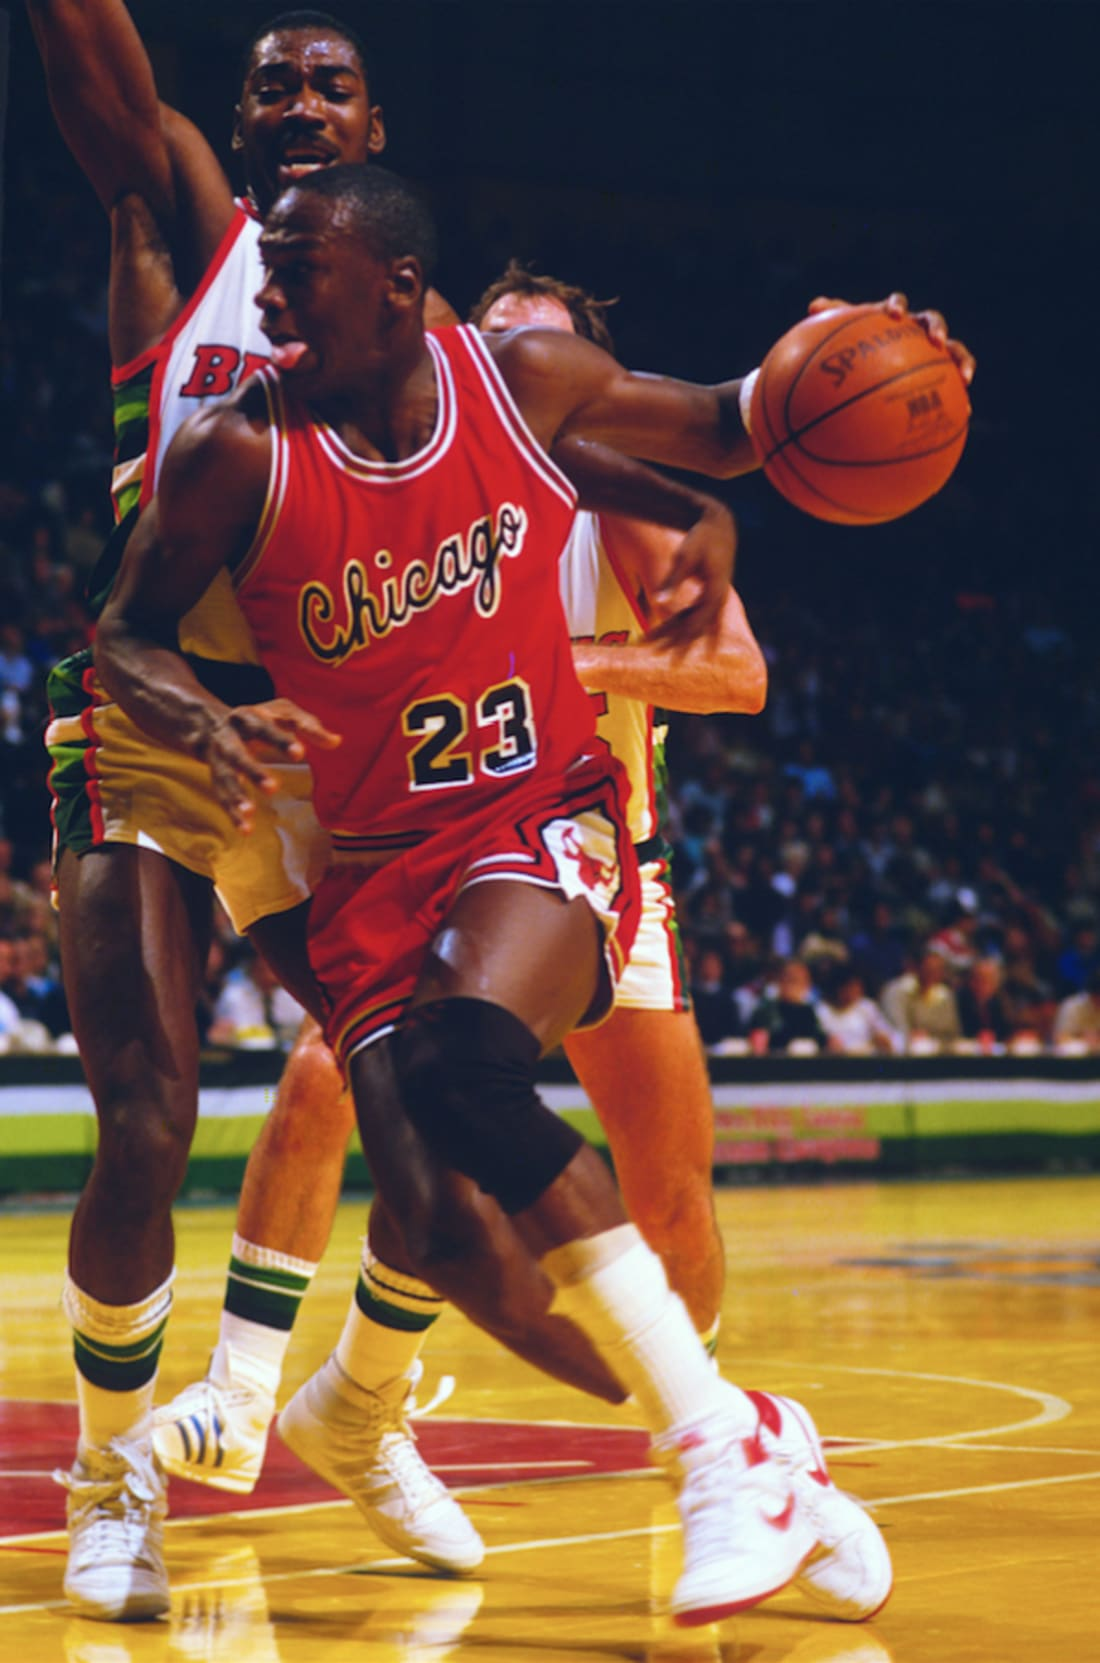 Michael Jordan Wearing Nike Air Ship 2